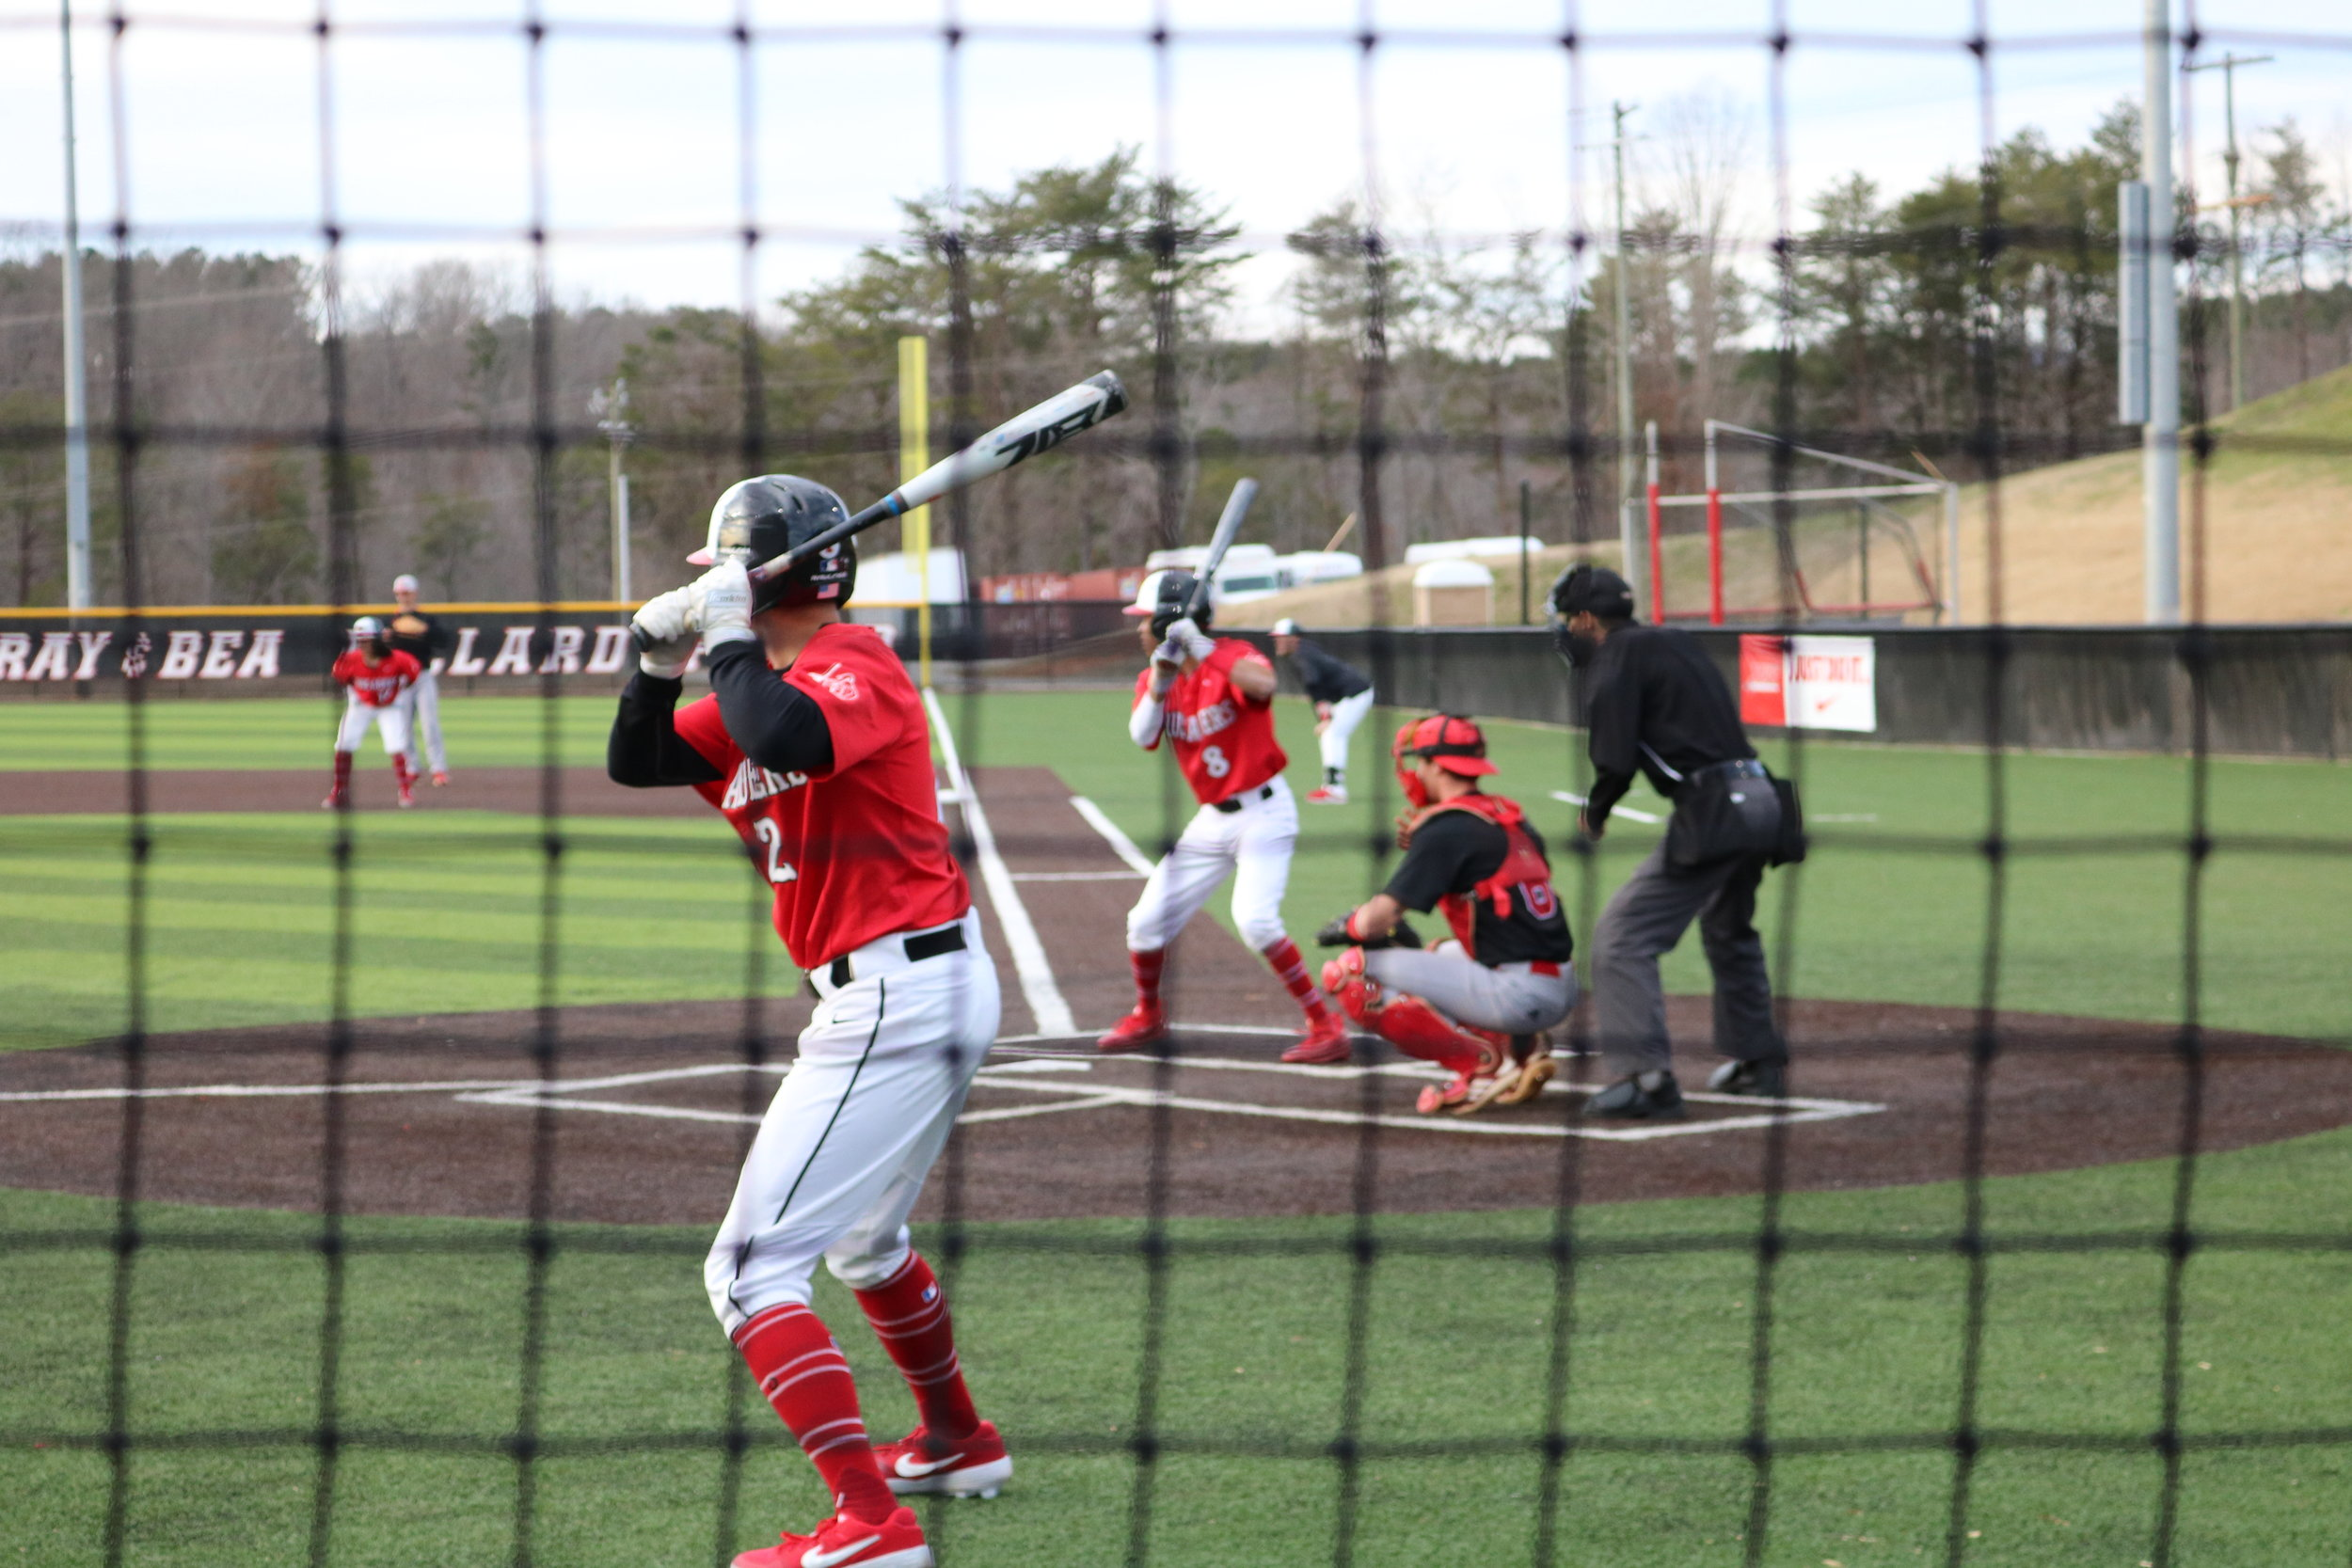 Senior Utah Jones (2), practices his swing while waiting to bat after Whitehead.